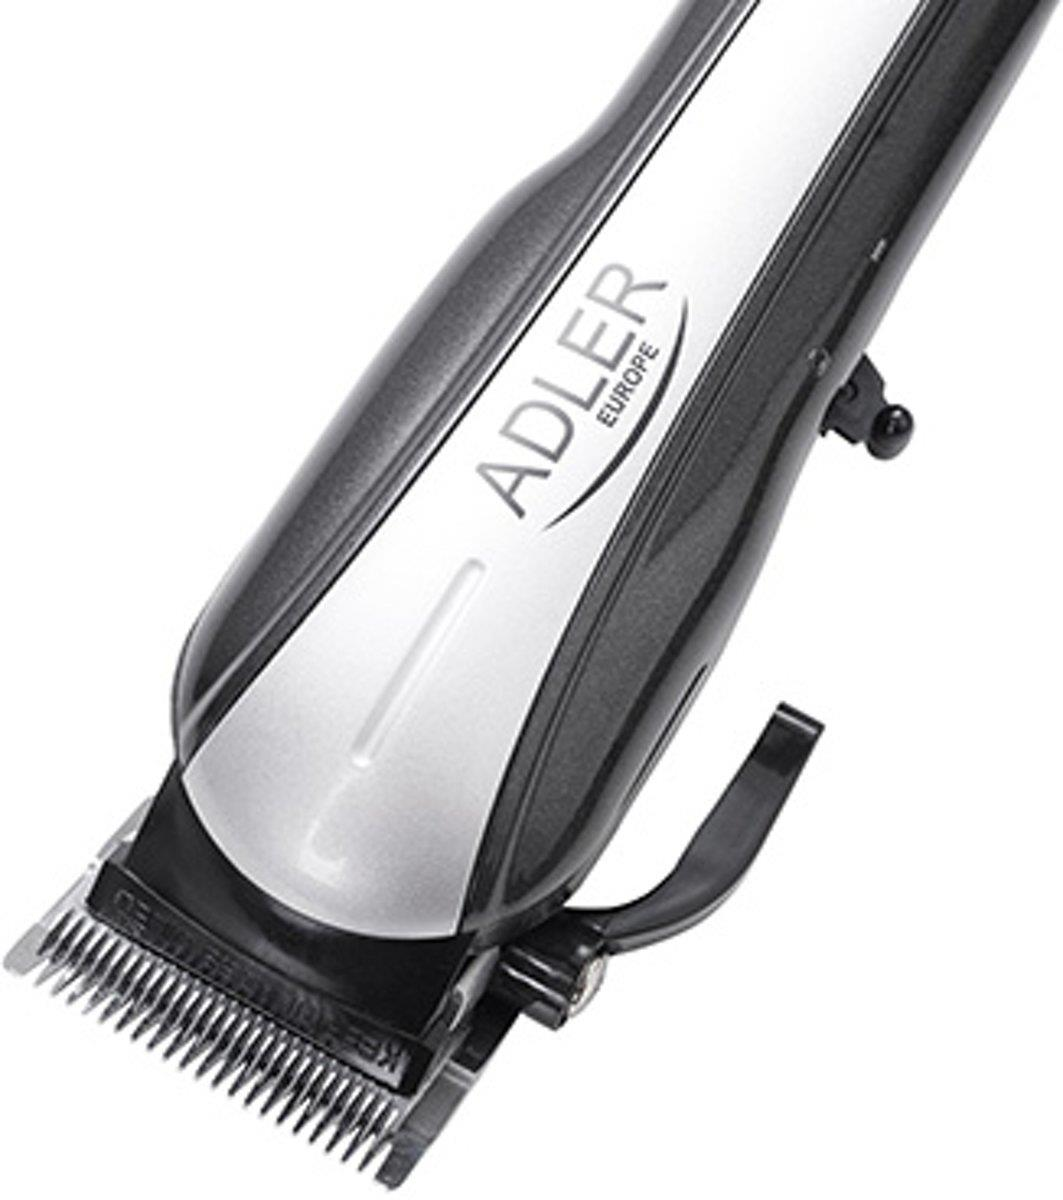 Adler AD 2828 hair trimmers/clipper Black, Grey